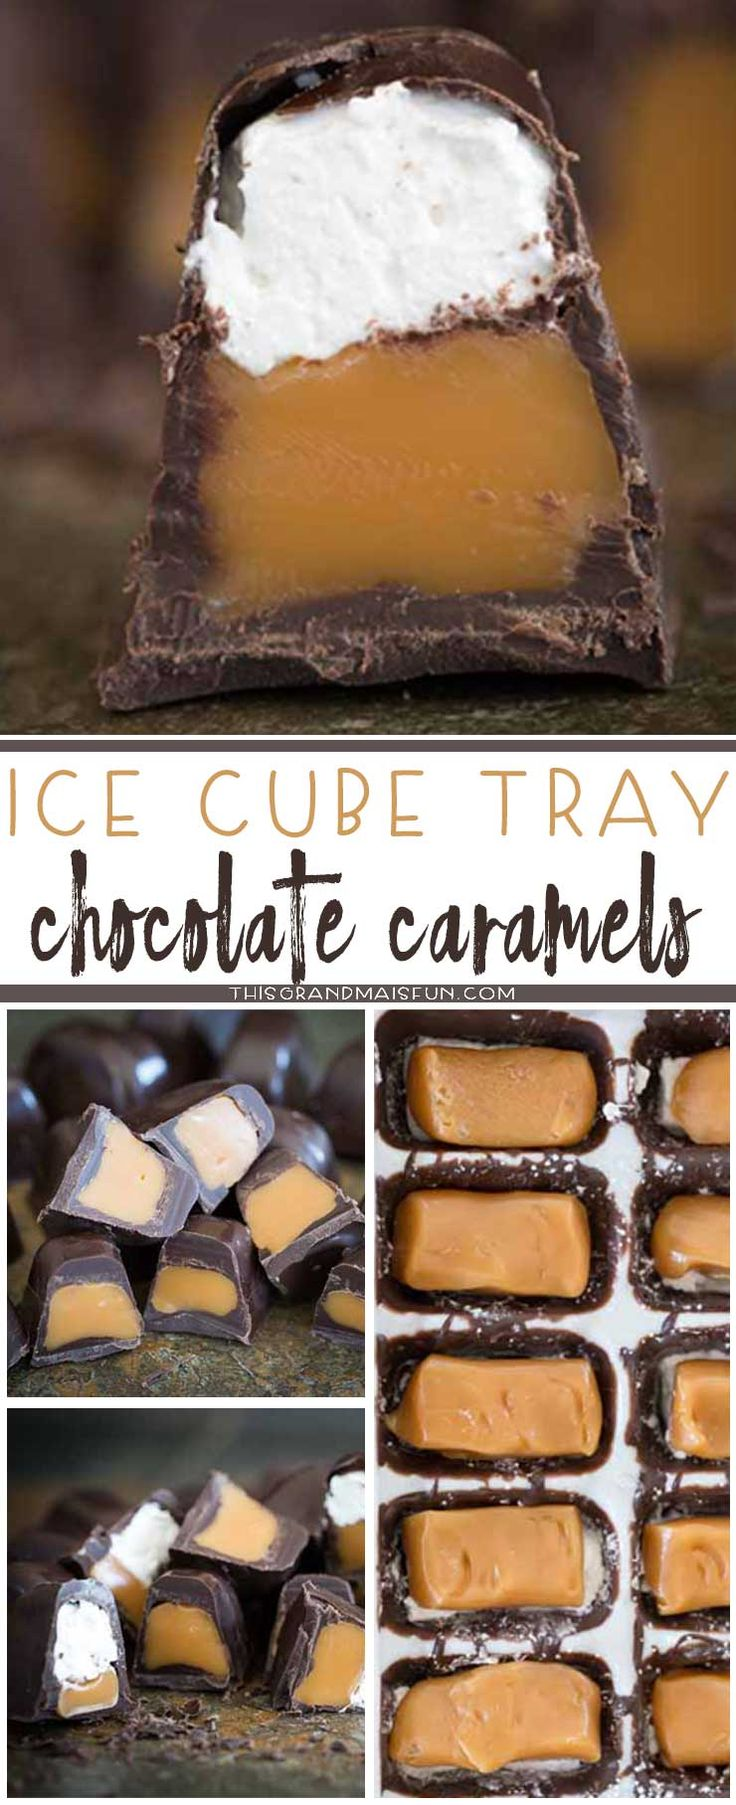 These Ice Cube Tray Chocolates are SO fun and easy to make! Within minutes you can have a filled chocolate candy to give as gifts or to eat for yourself.